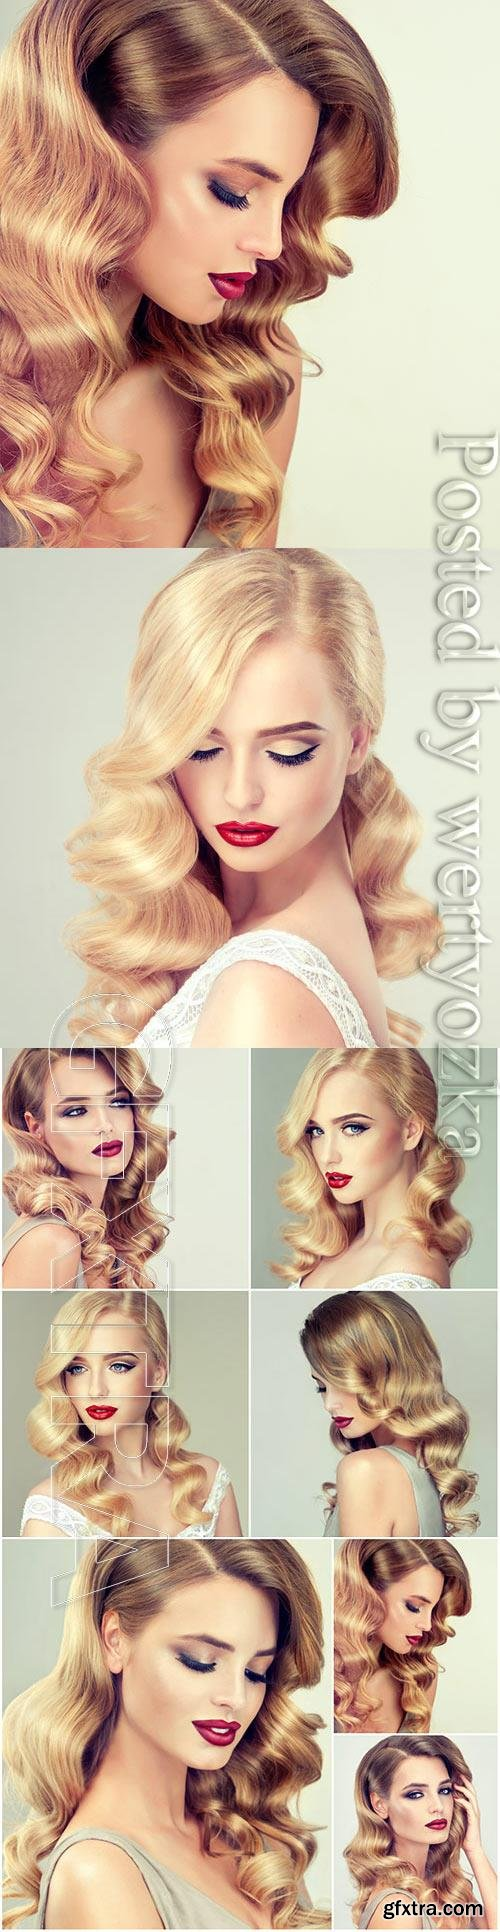 Lovely blonde girl with beautiful hair stock photo